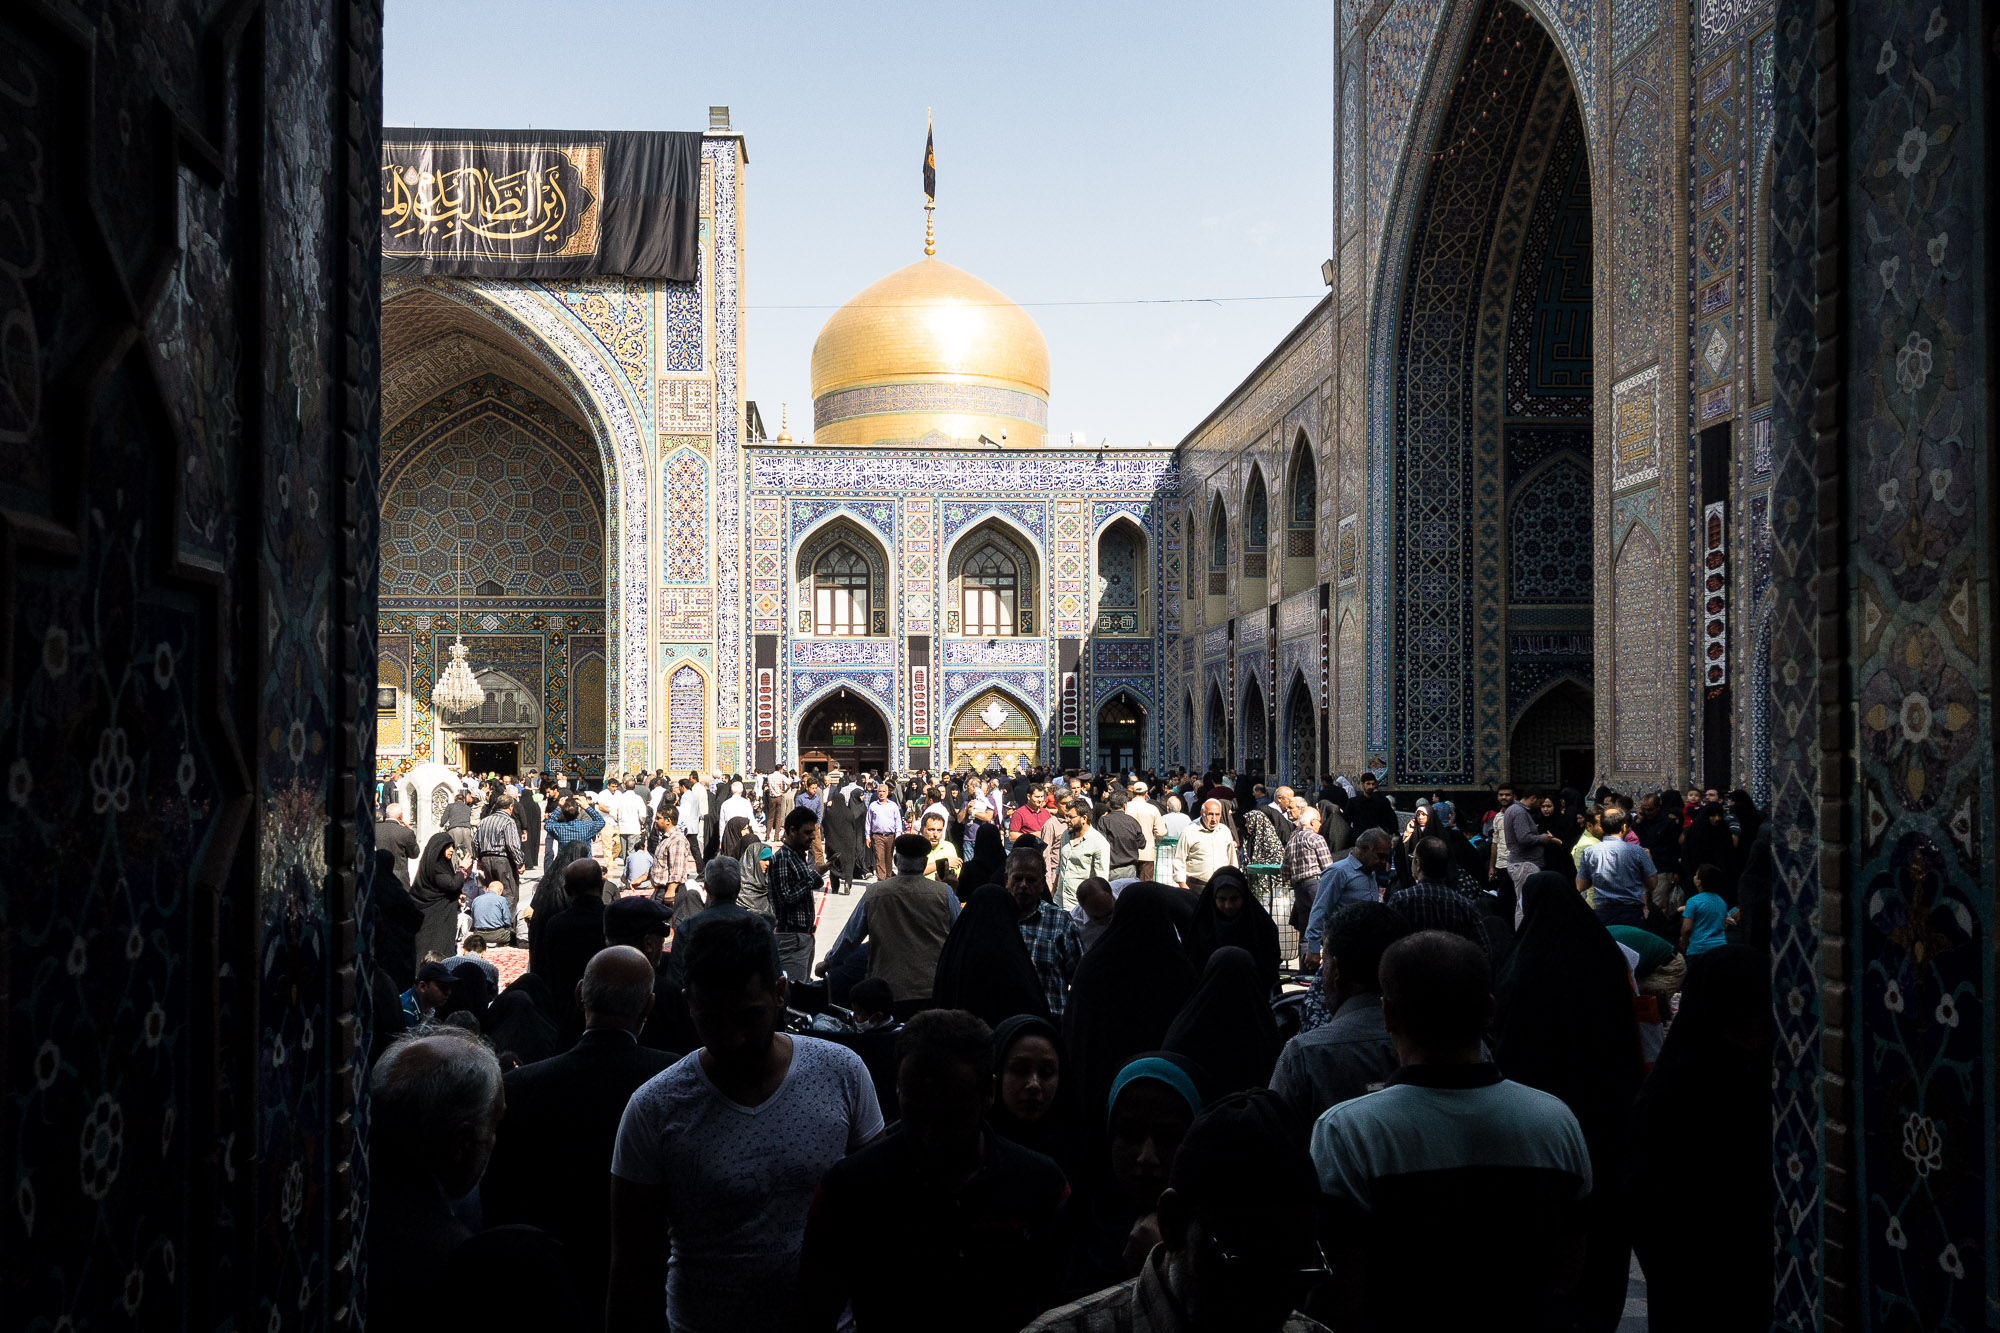 inside the shrine of Imam Reza